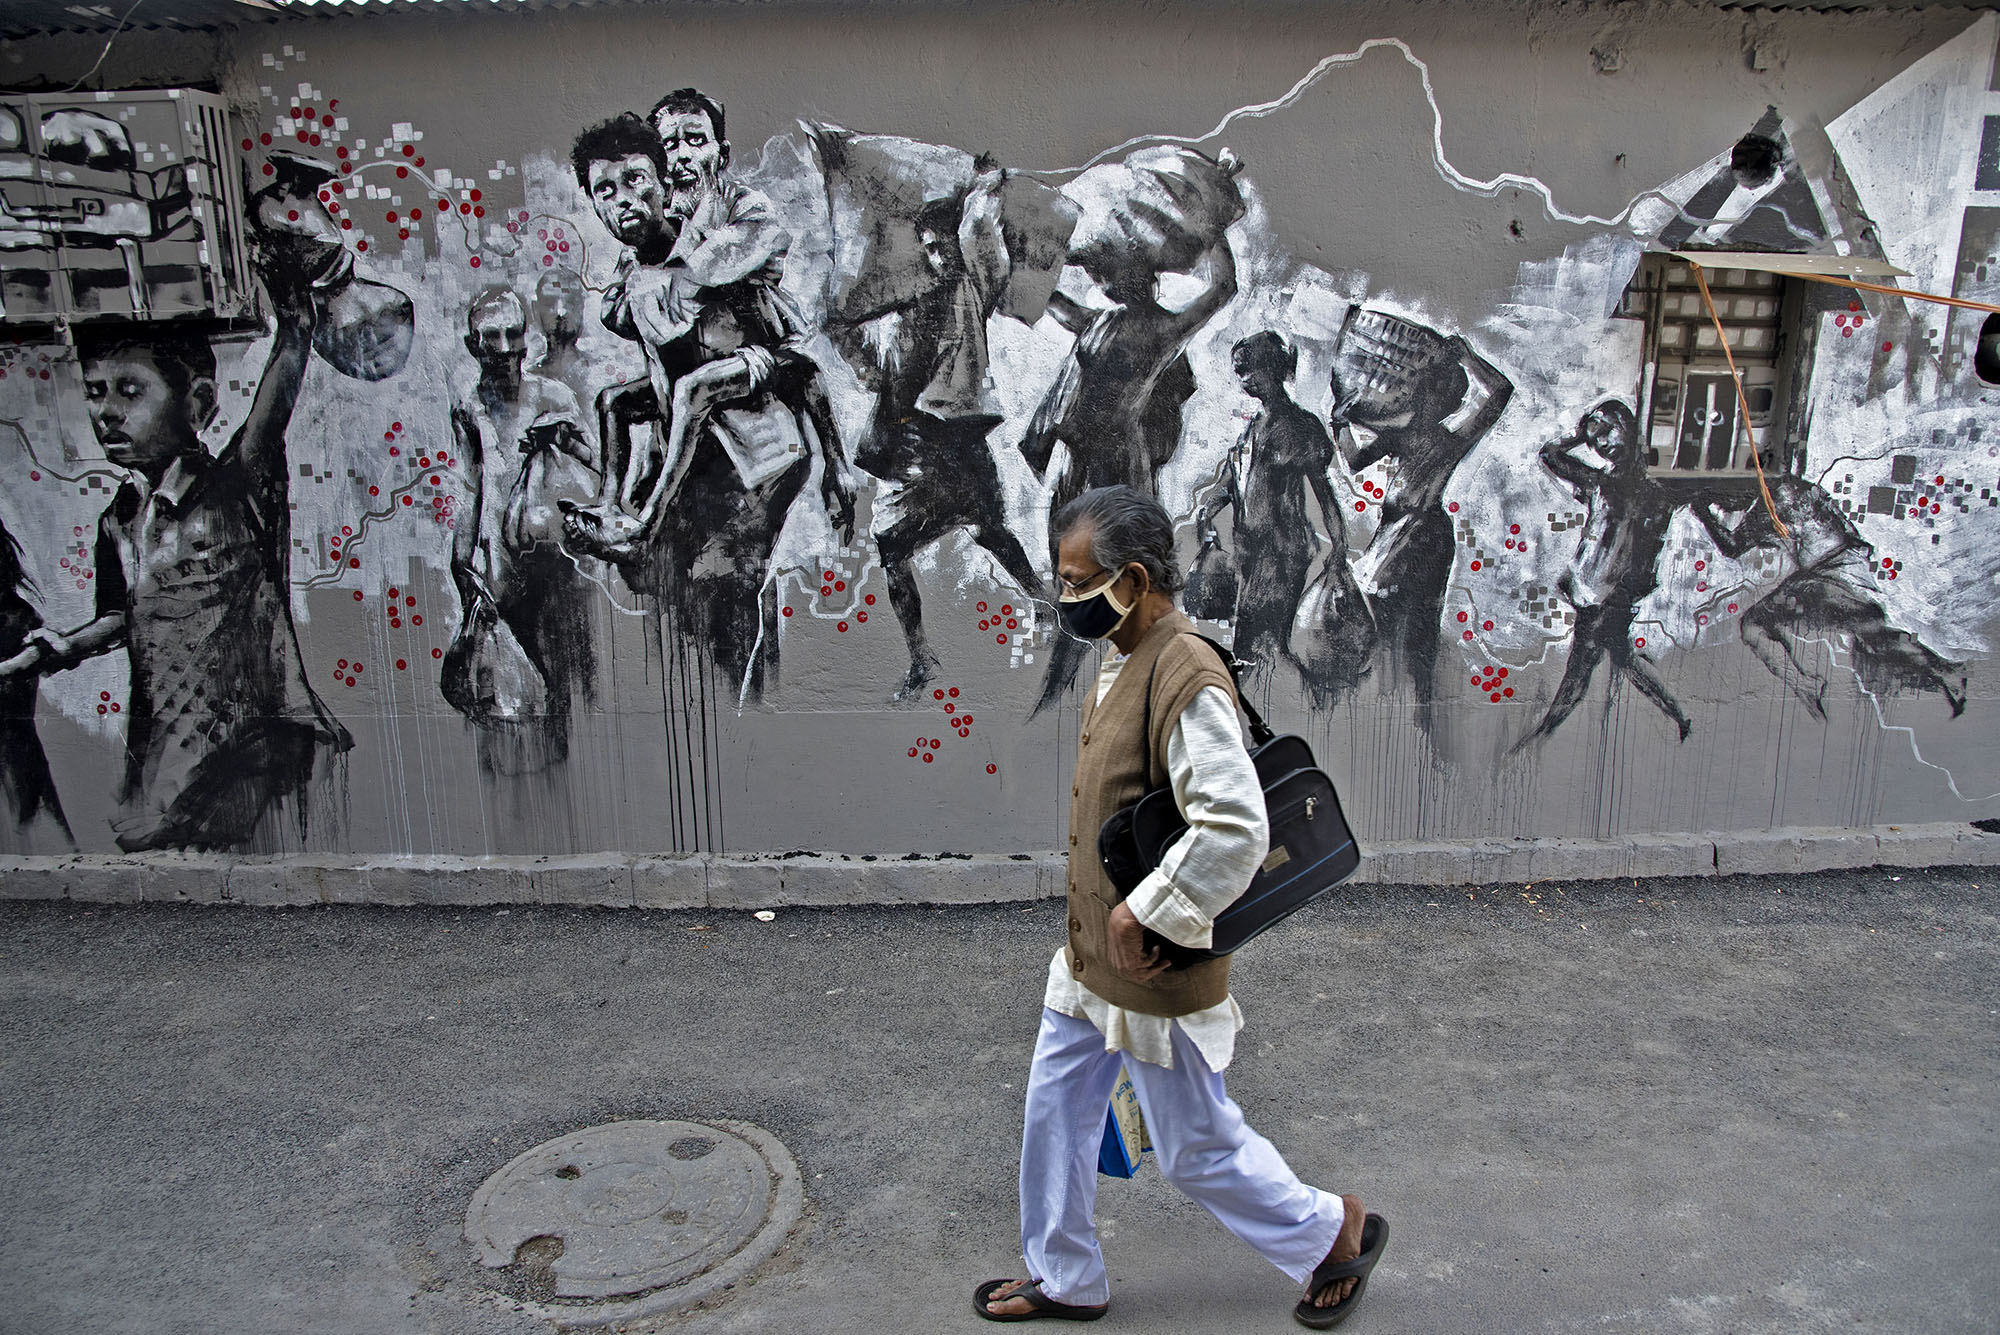 An elderly citizen walks in front of a graffiti depicting the troublesome days of the pandemic with which we are still fighting.